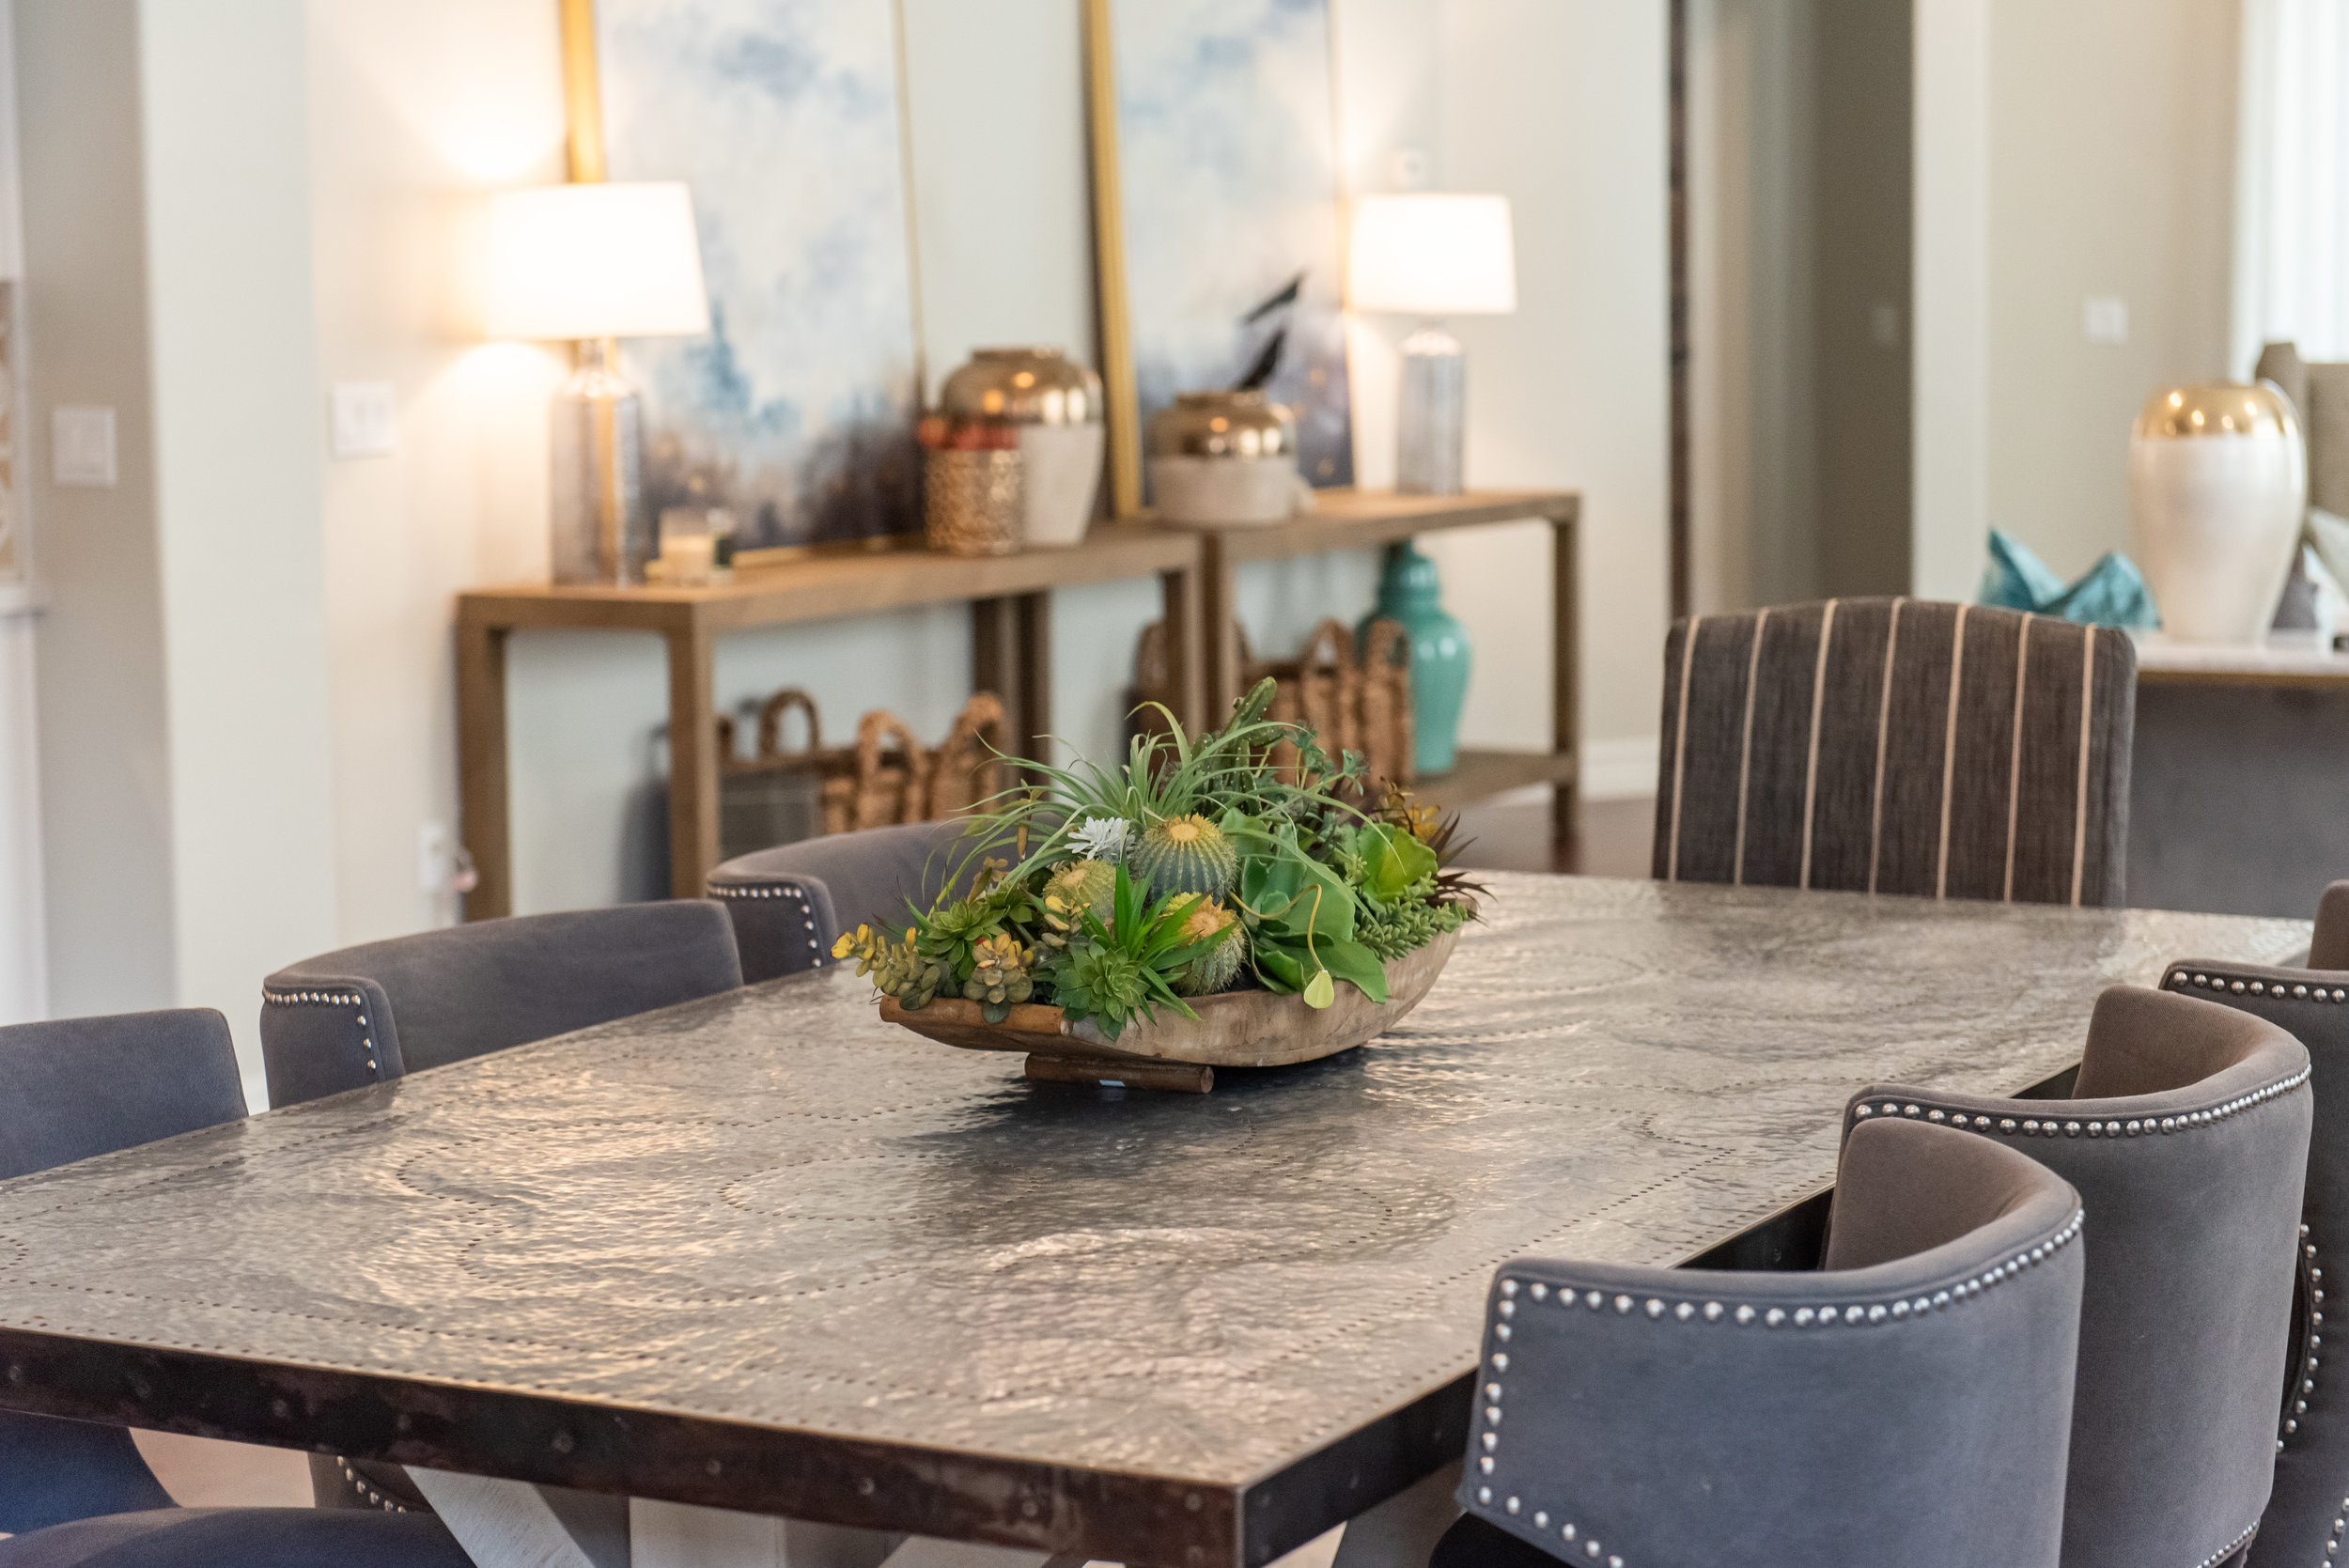 Diningroom + nailhead dining chairs + stripped chairs.jpg